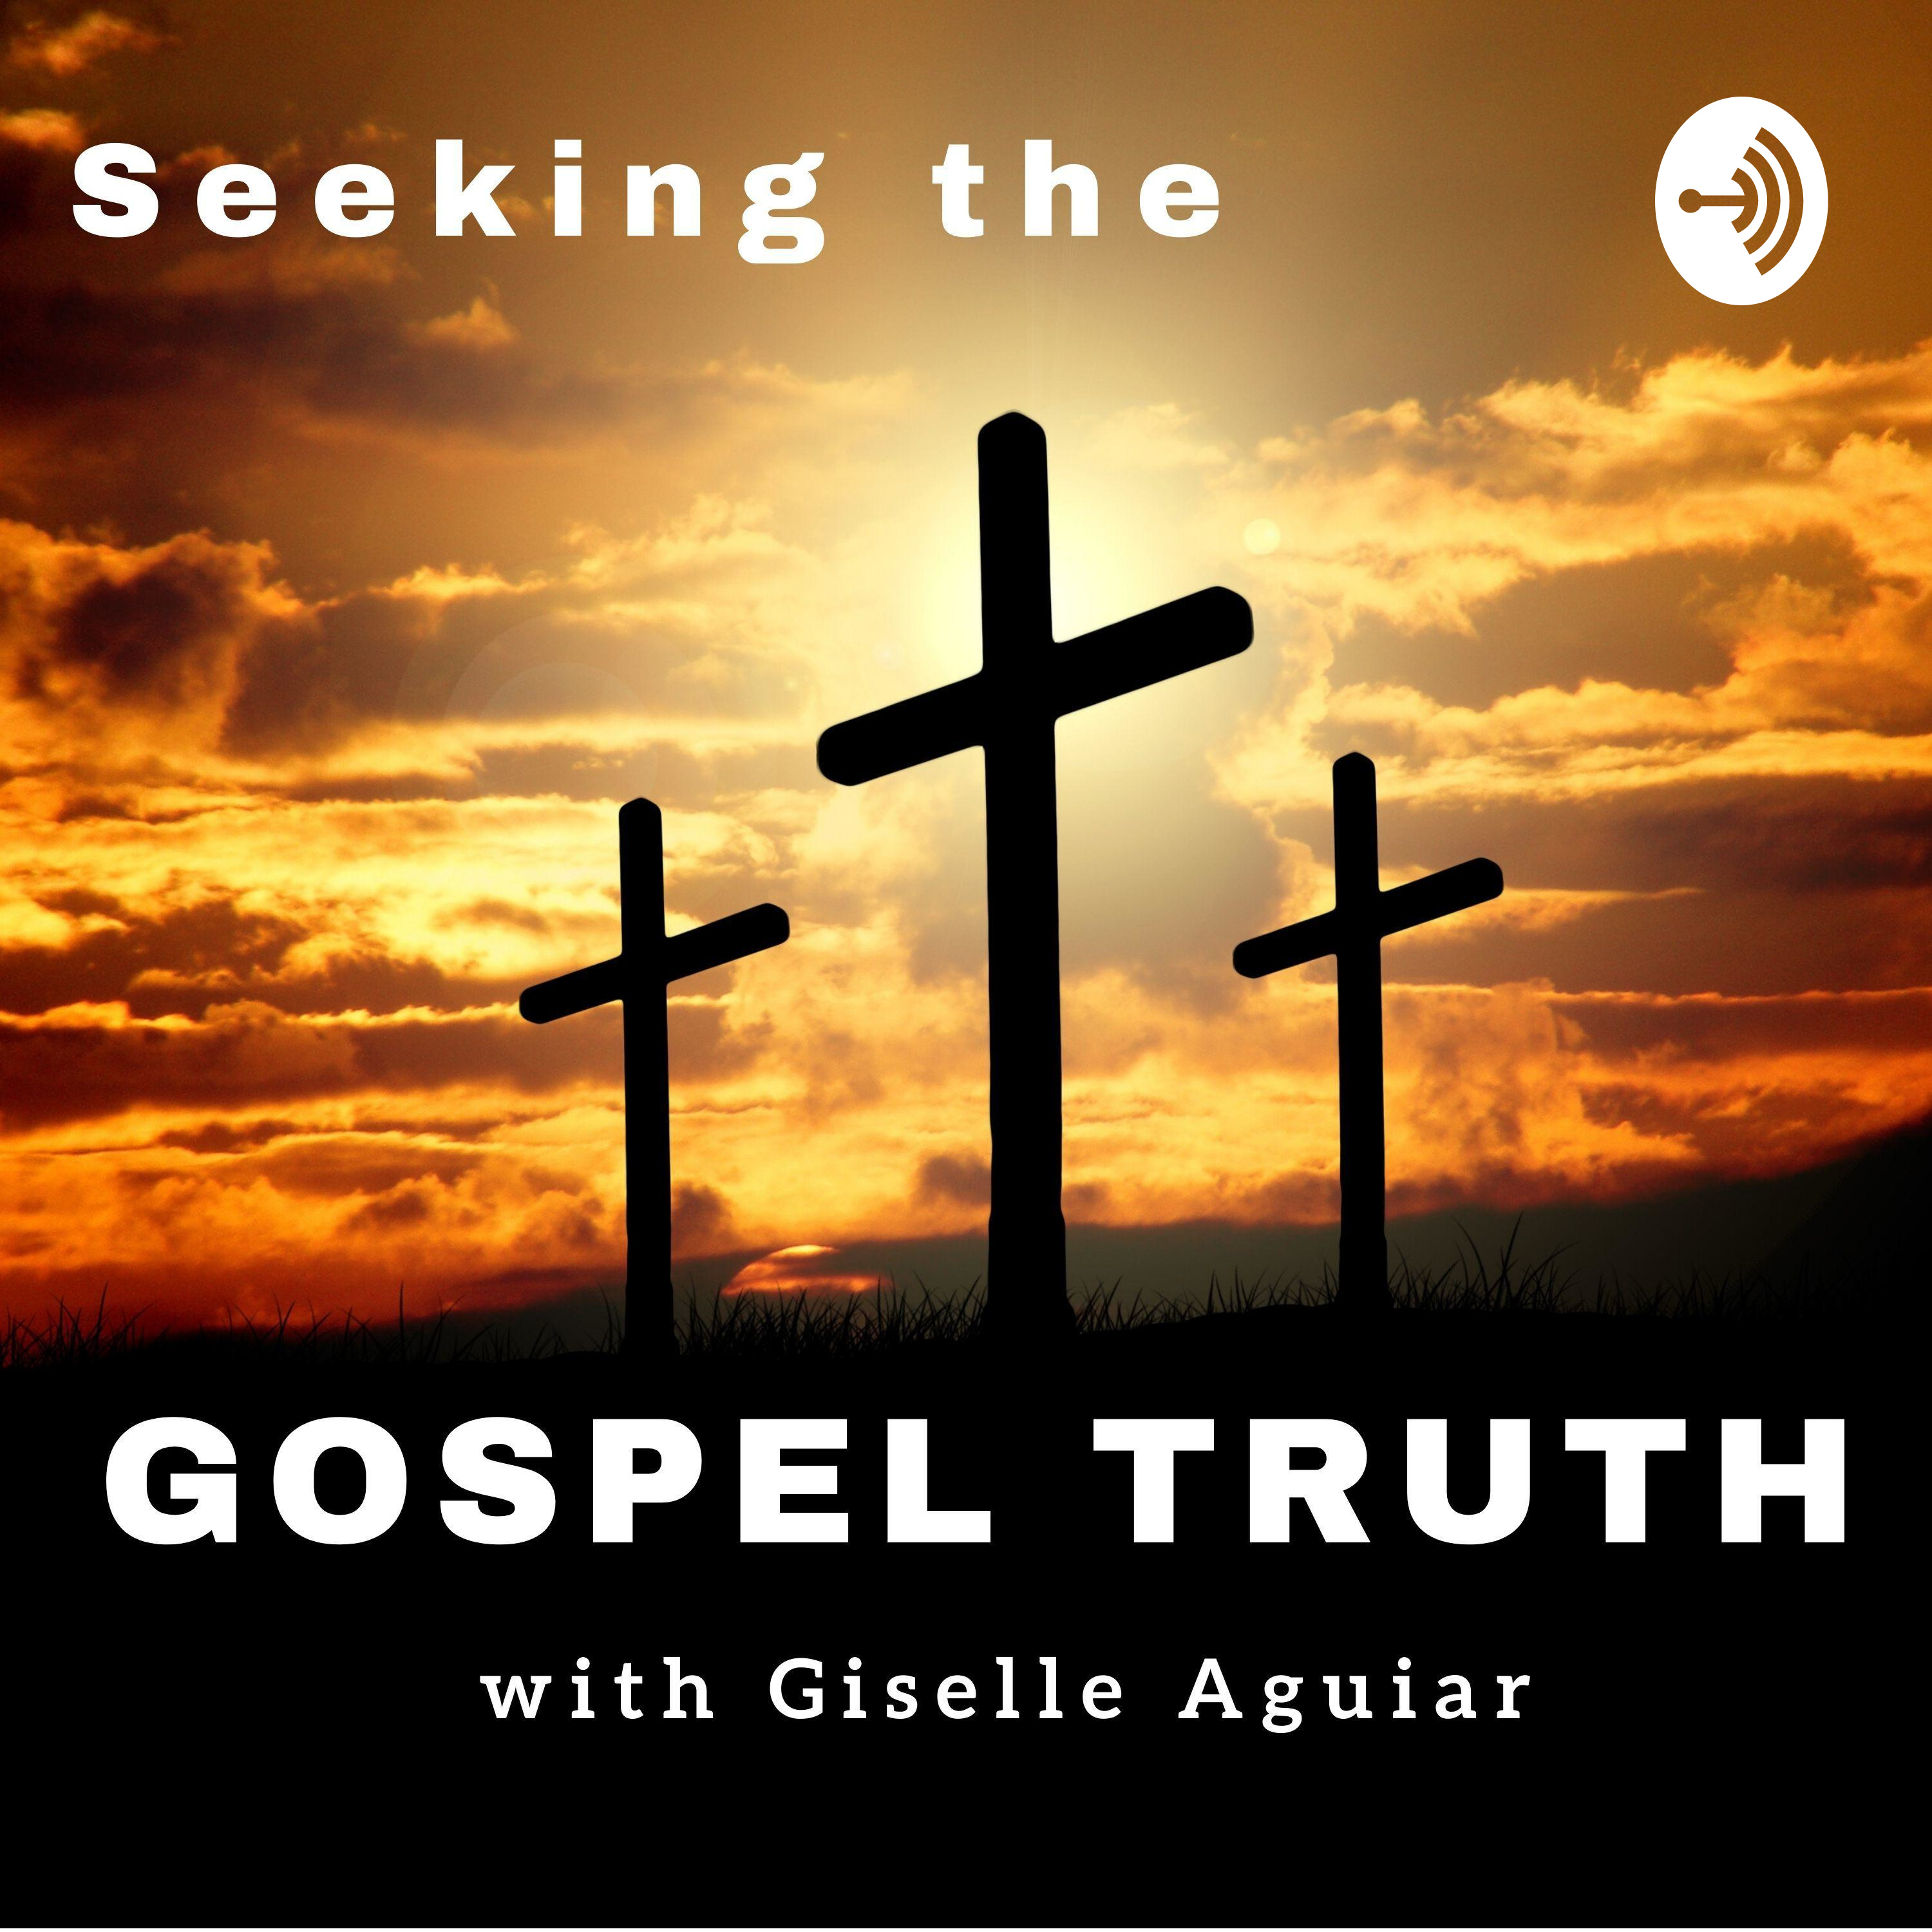 Subscribe to my Podcast: Seeking the Gospel Truth